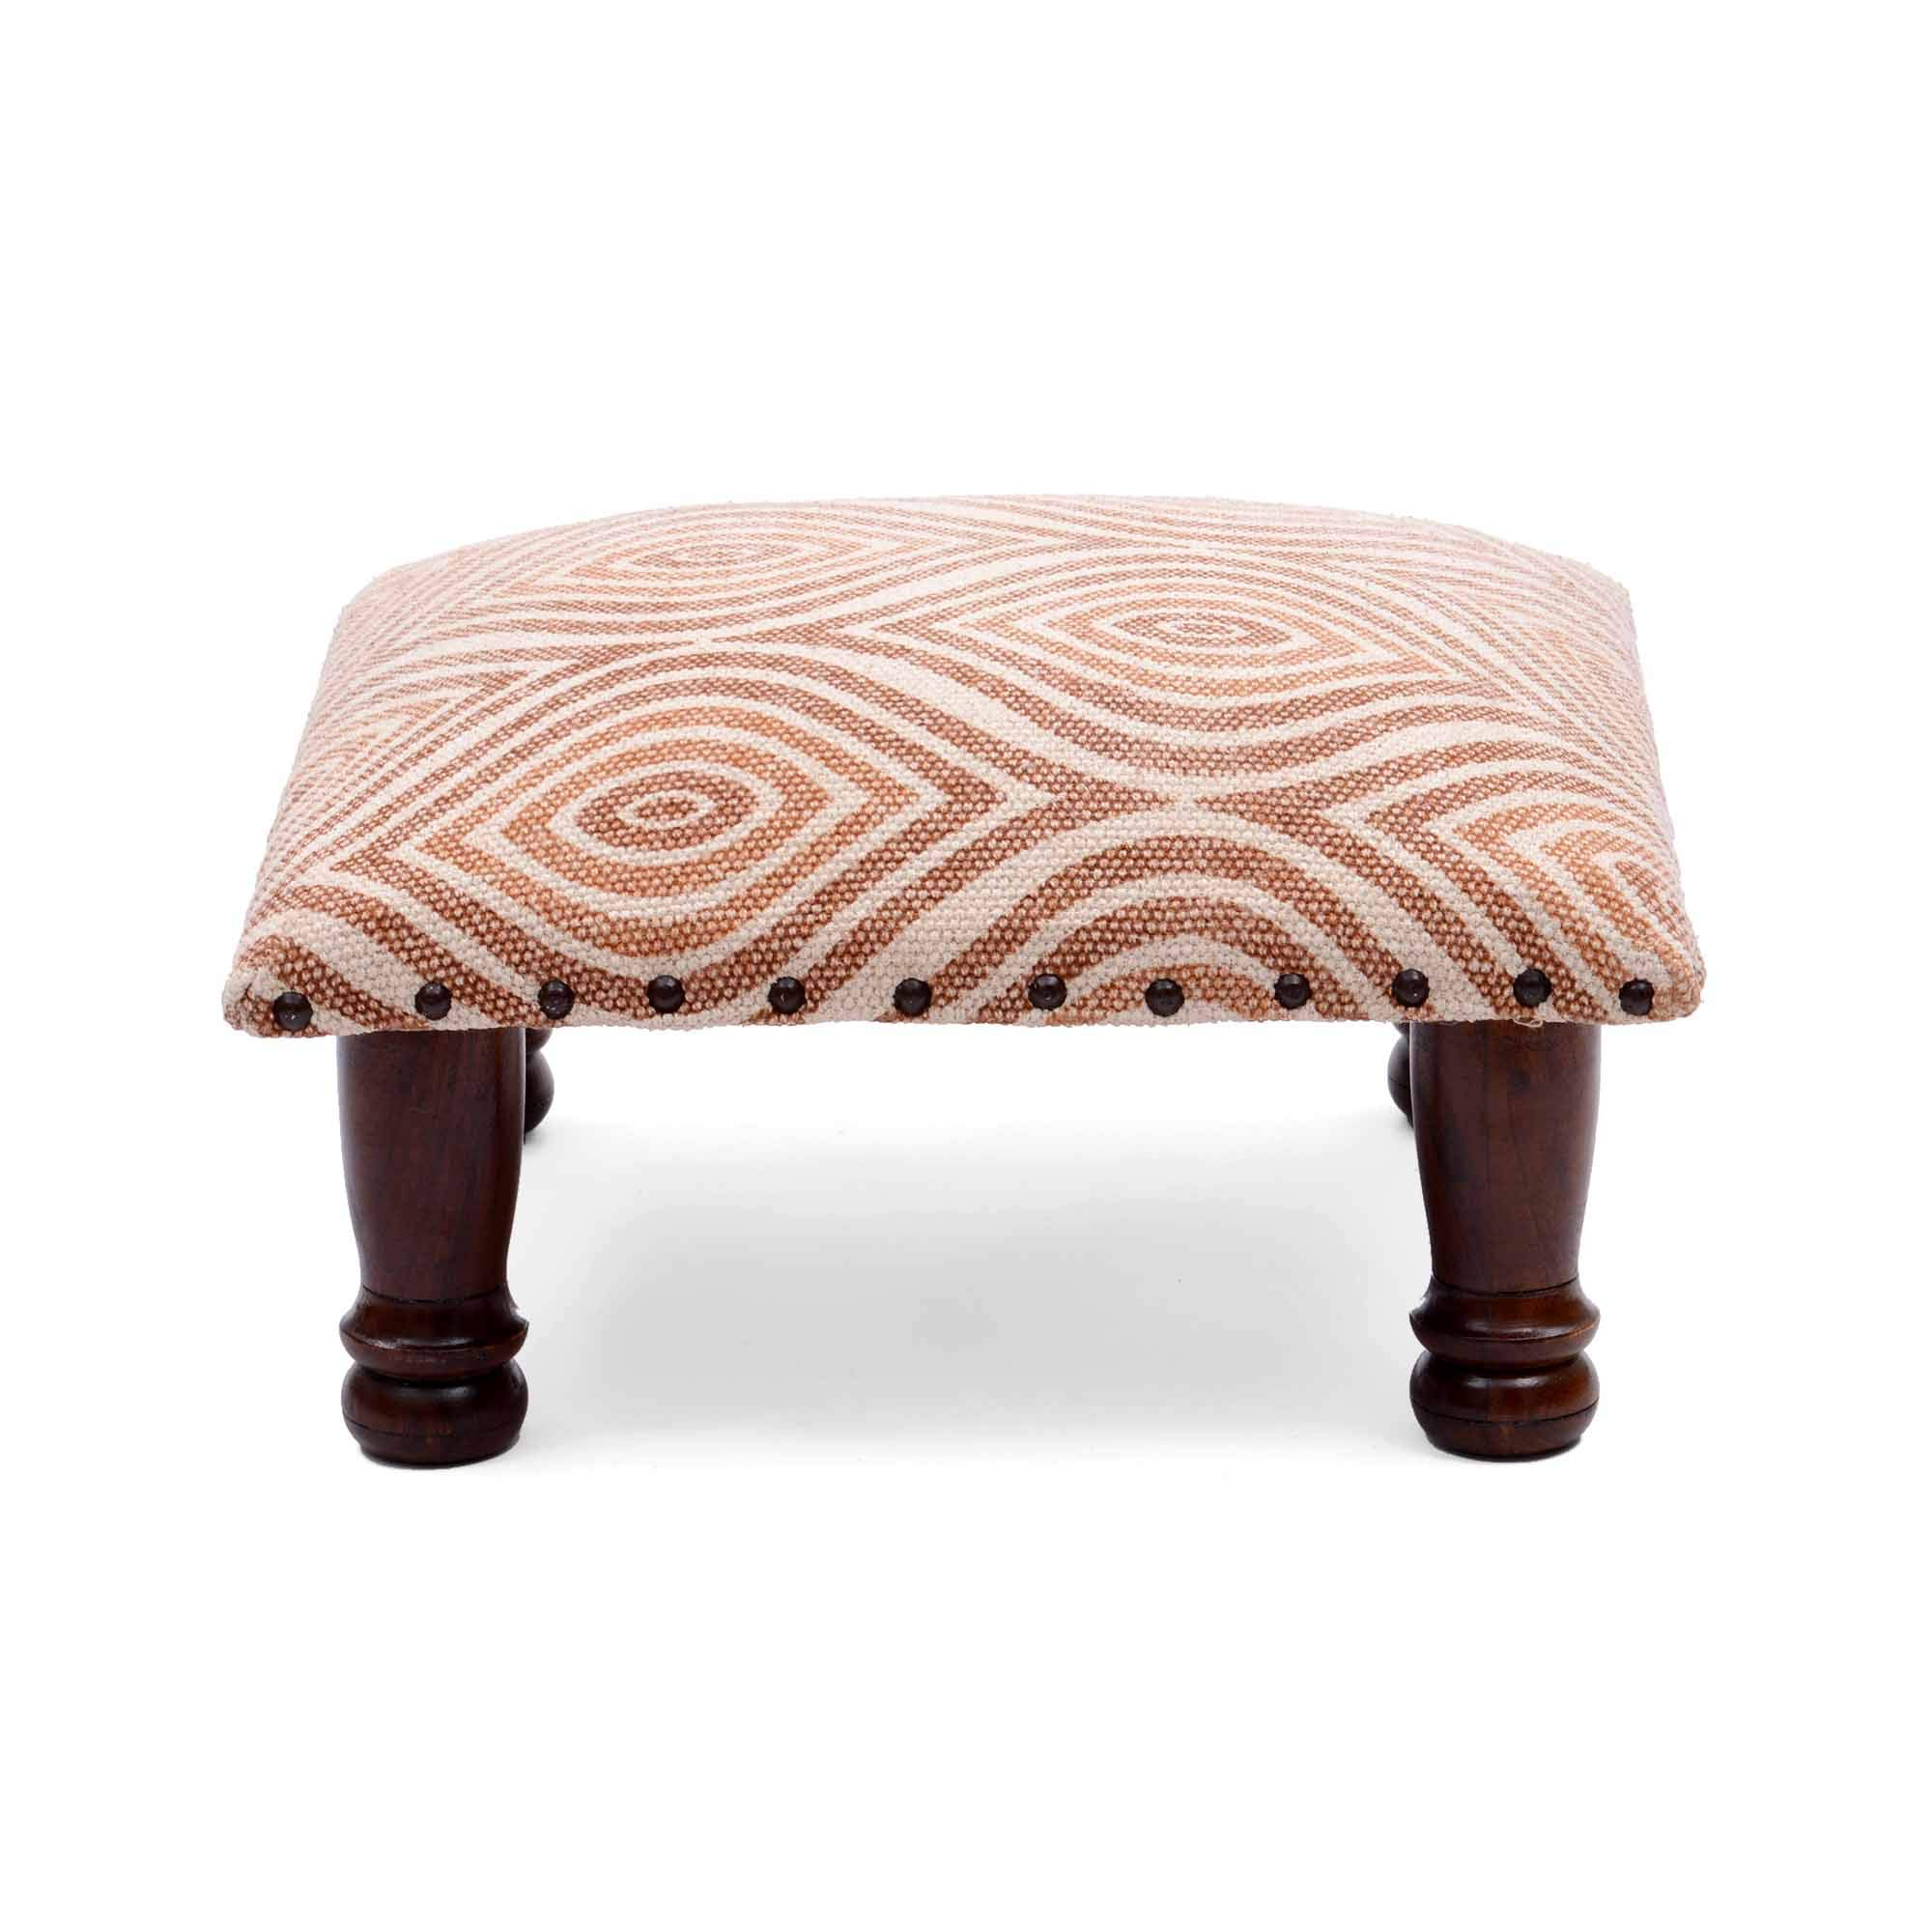 Natural Furnish 100% Cotton Medium Size Living Room Poufee and Foot Stool by Natural Furnish